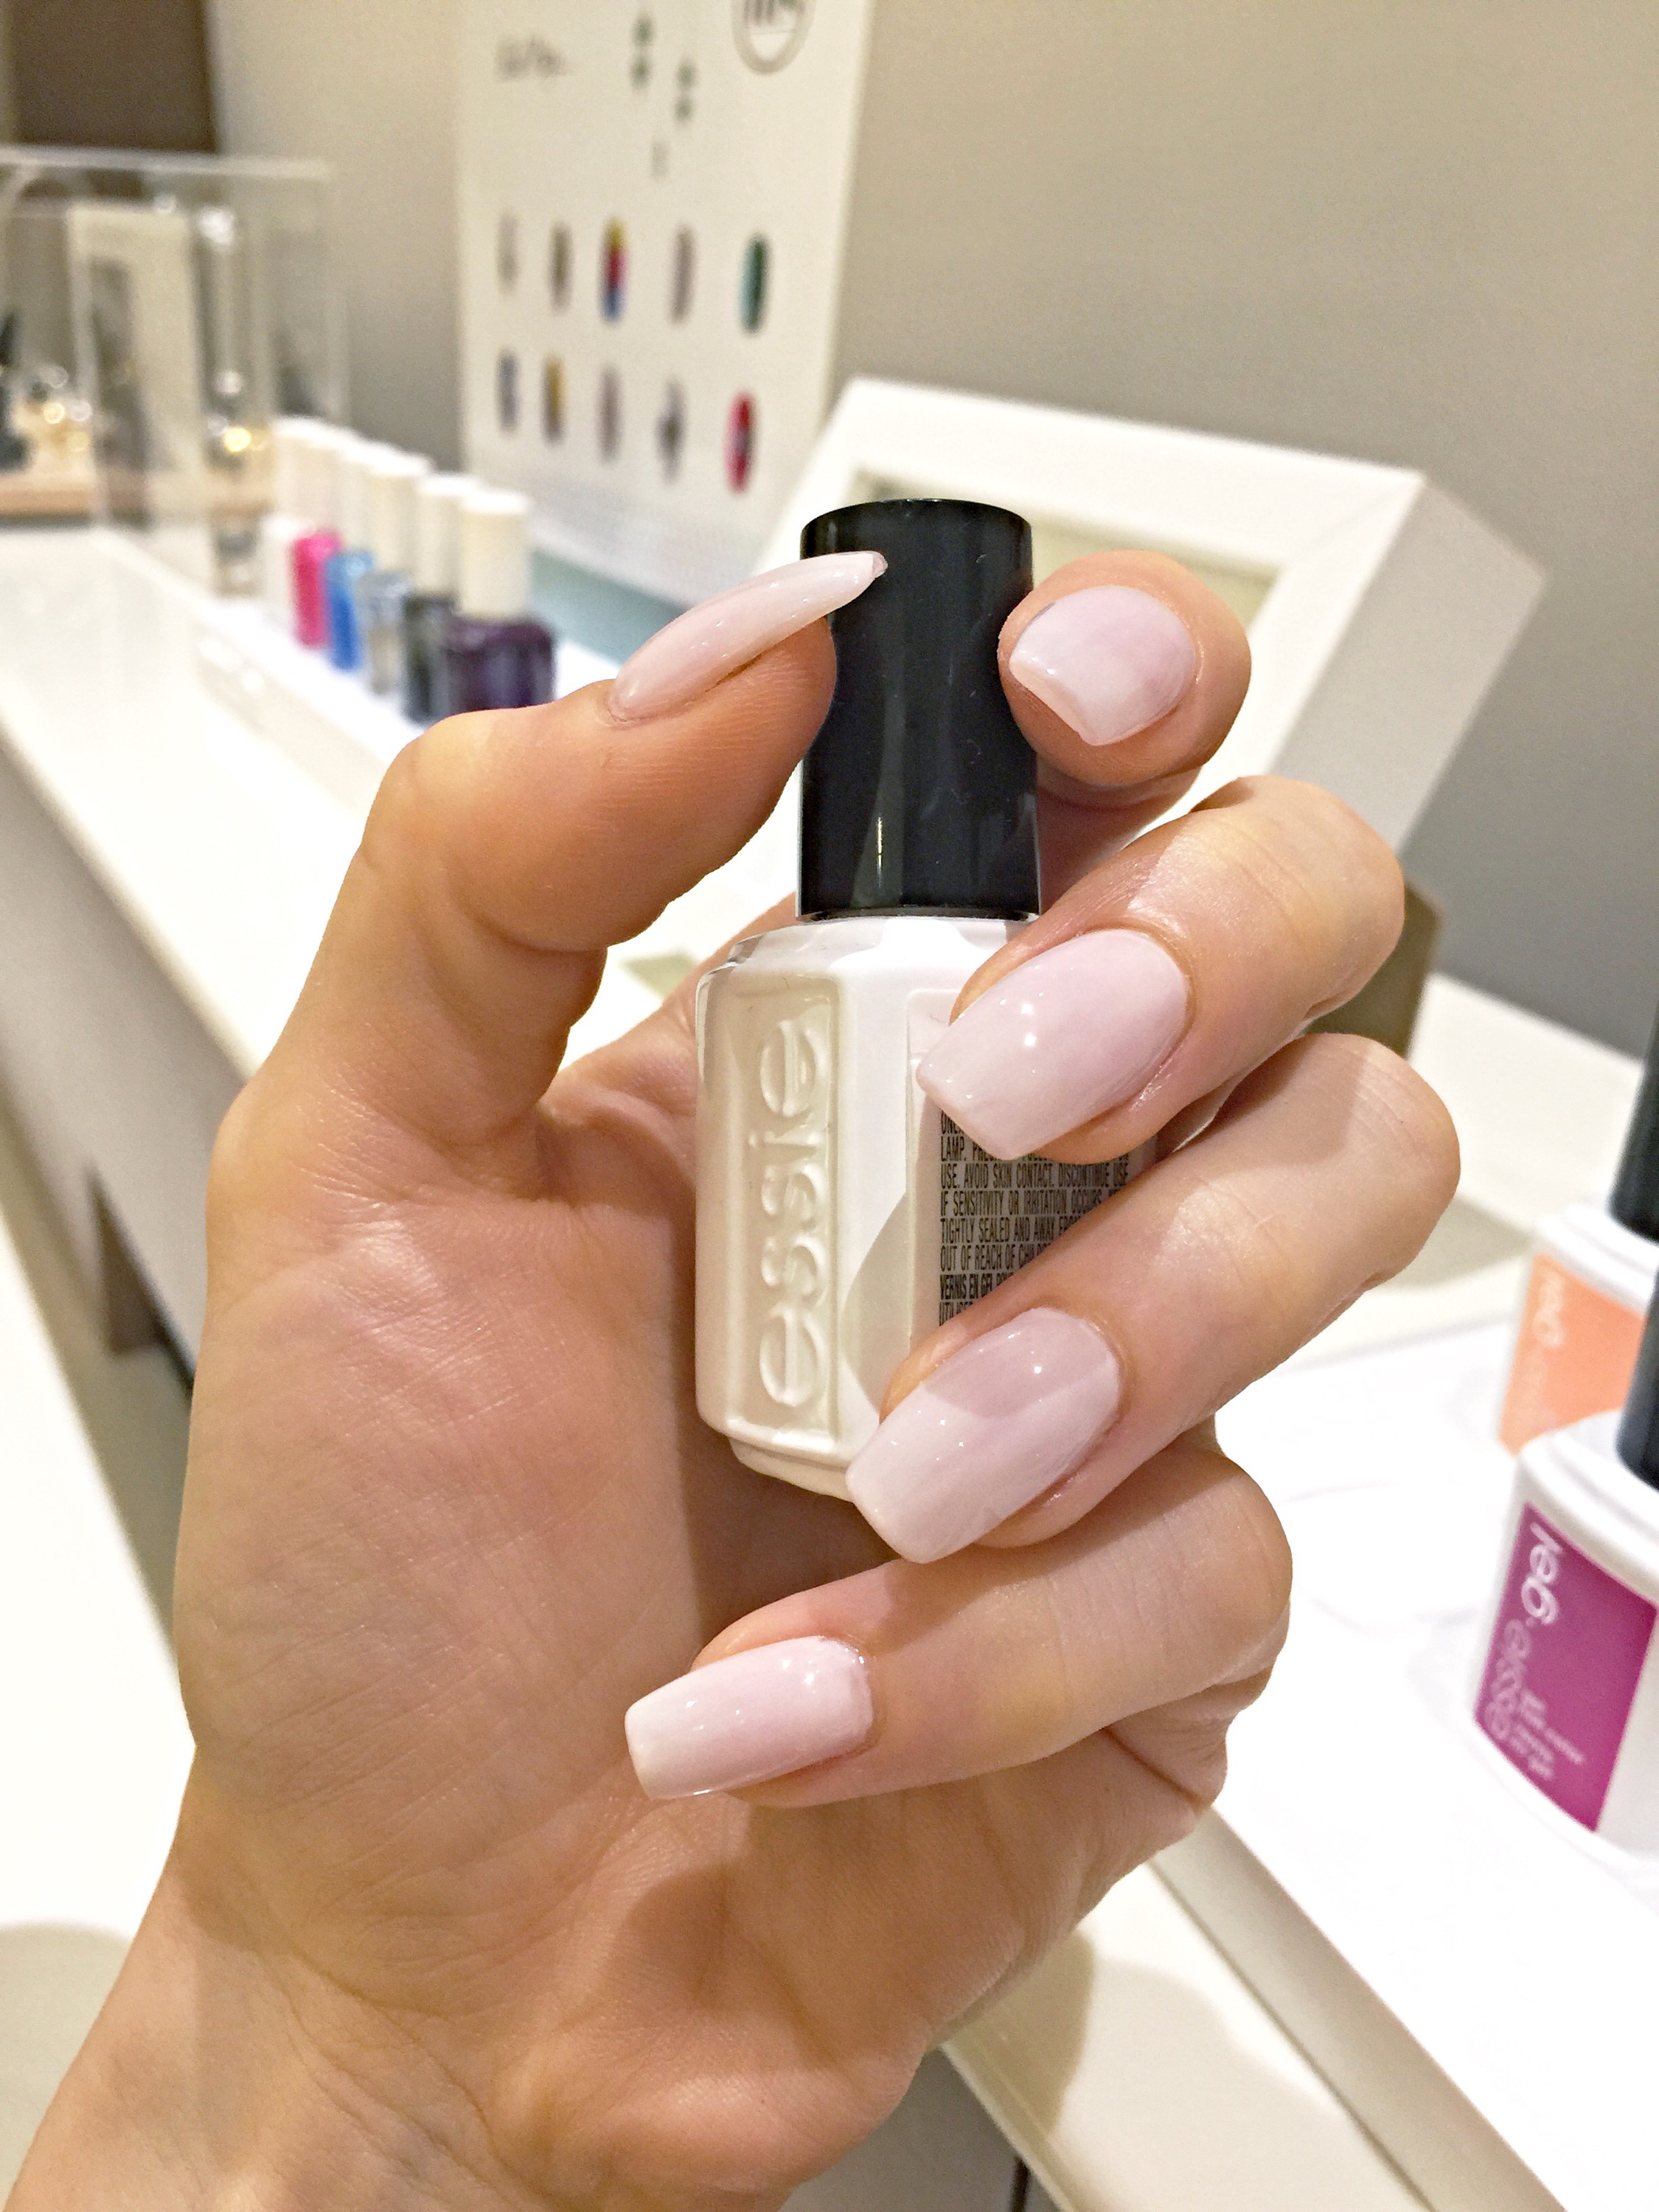 Beautify Me: The Nail Spa Abu Dhabi – Madebymoiself